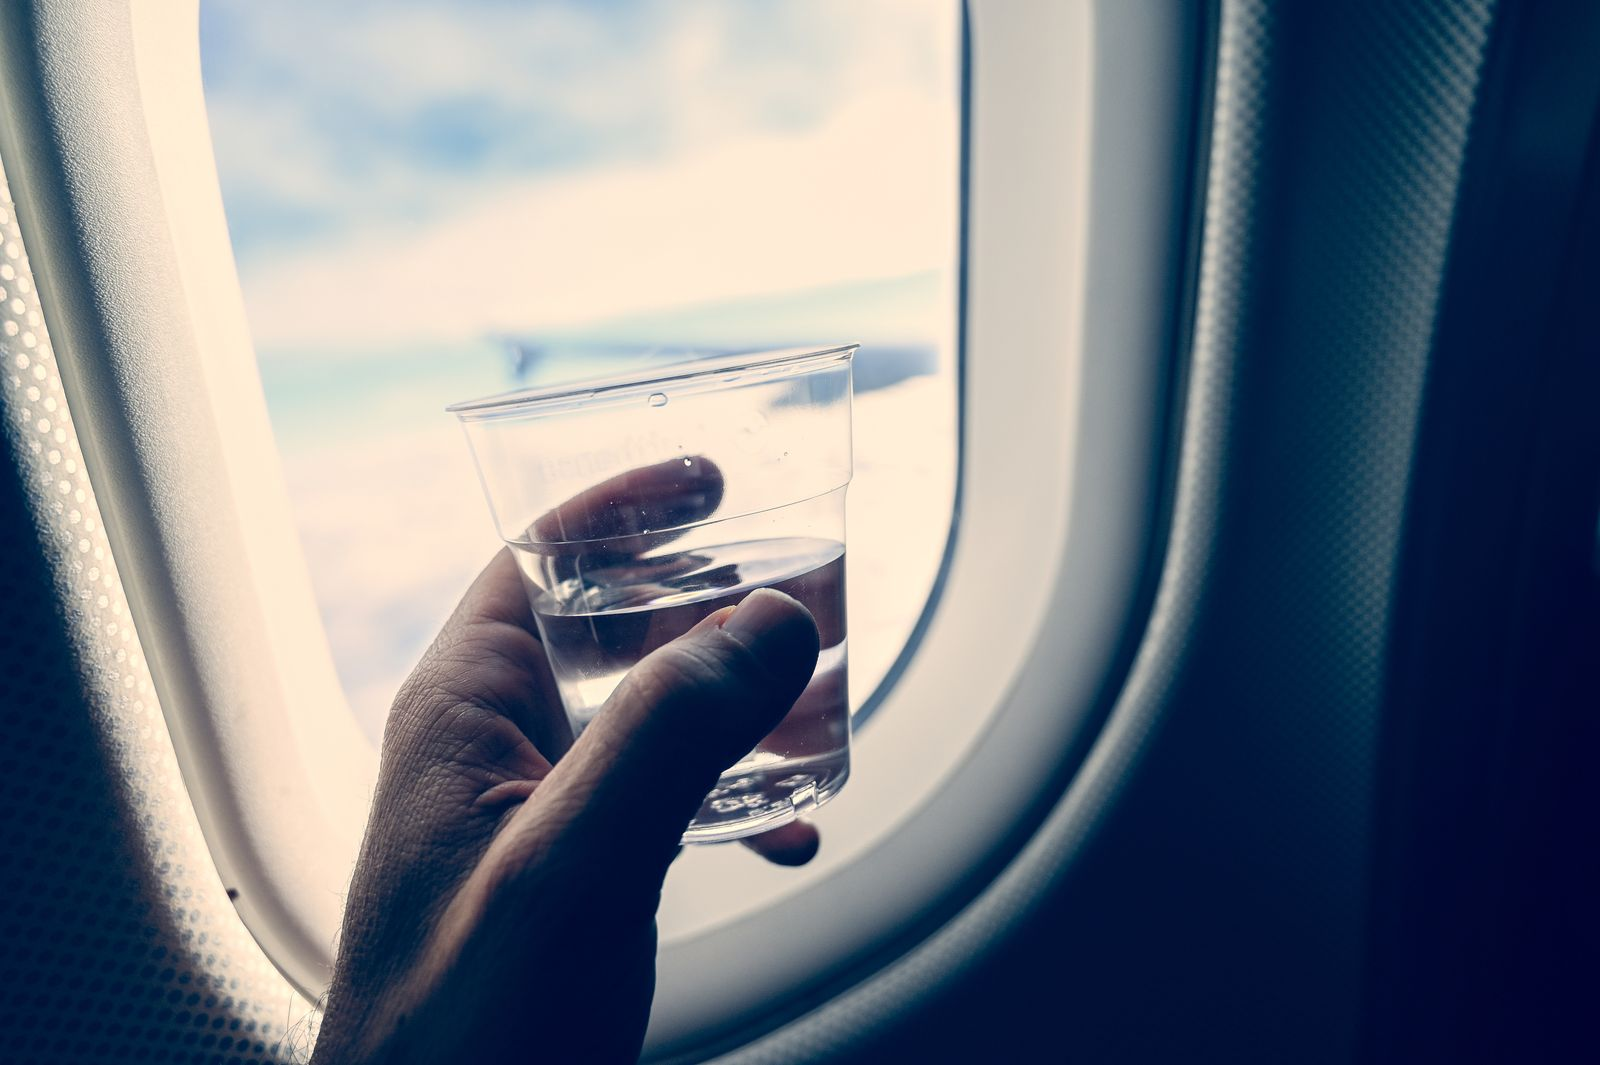 Man's hand holding a glass with transparent liquid (water or liquor). Inside an airplane.